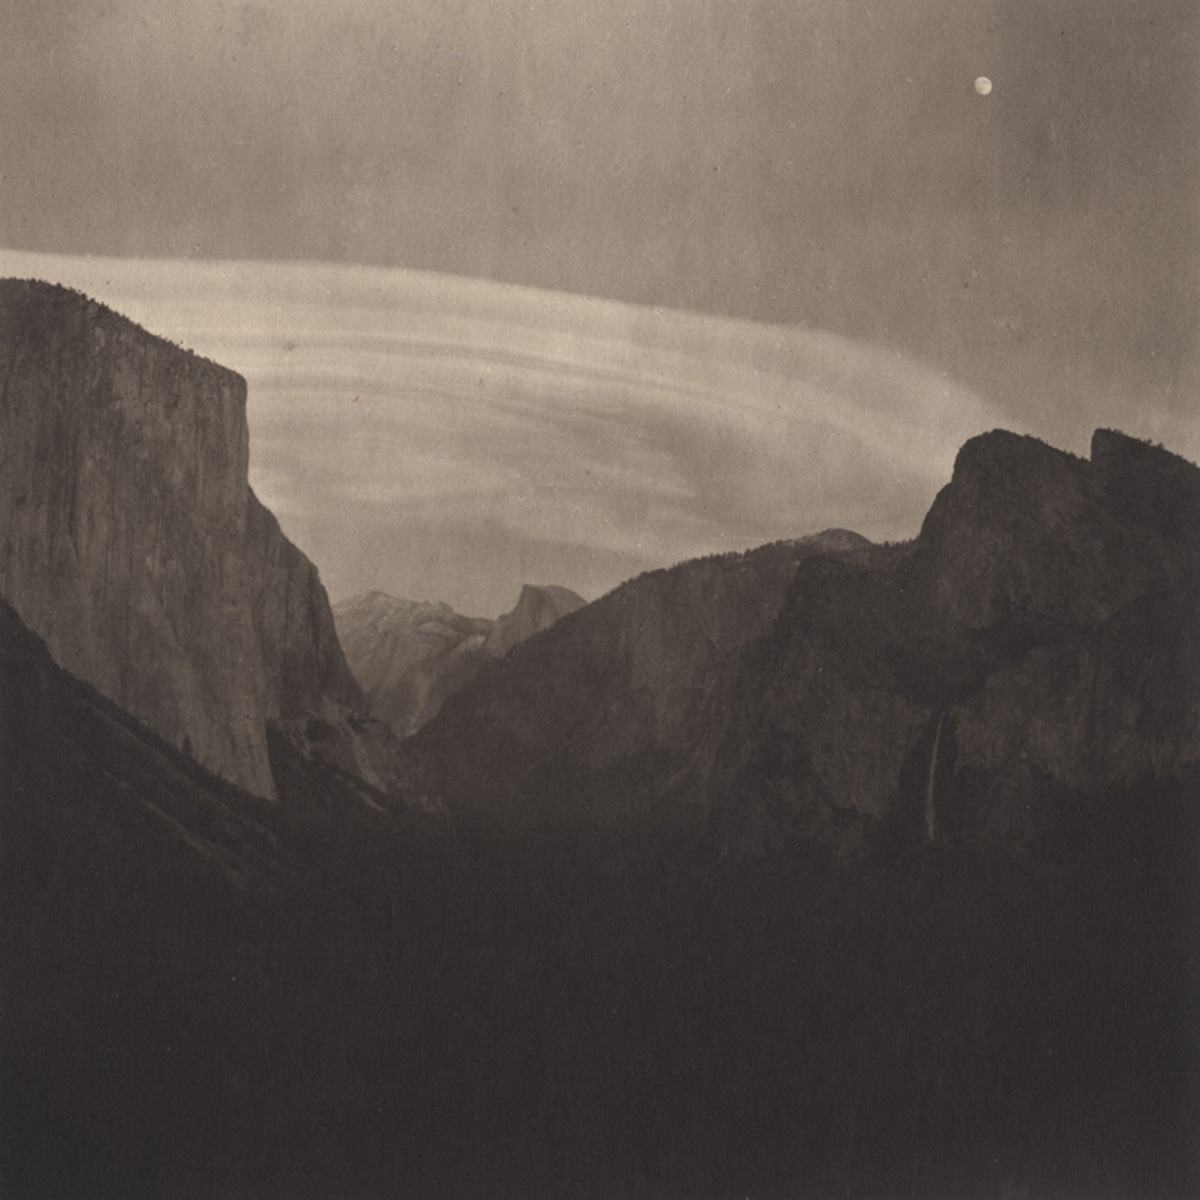 Takeshi Shikama Silent Respiration of Forests - Yosemite #5